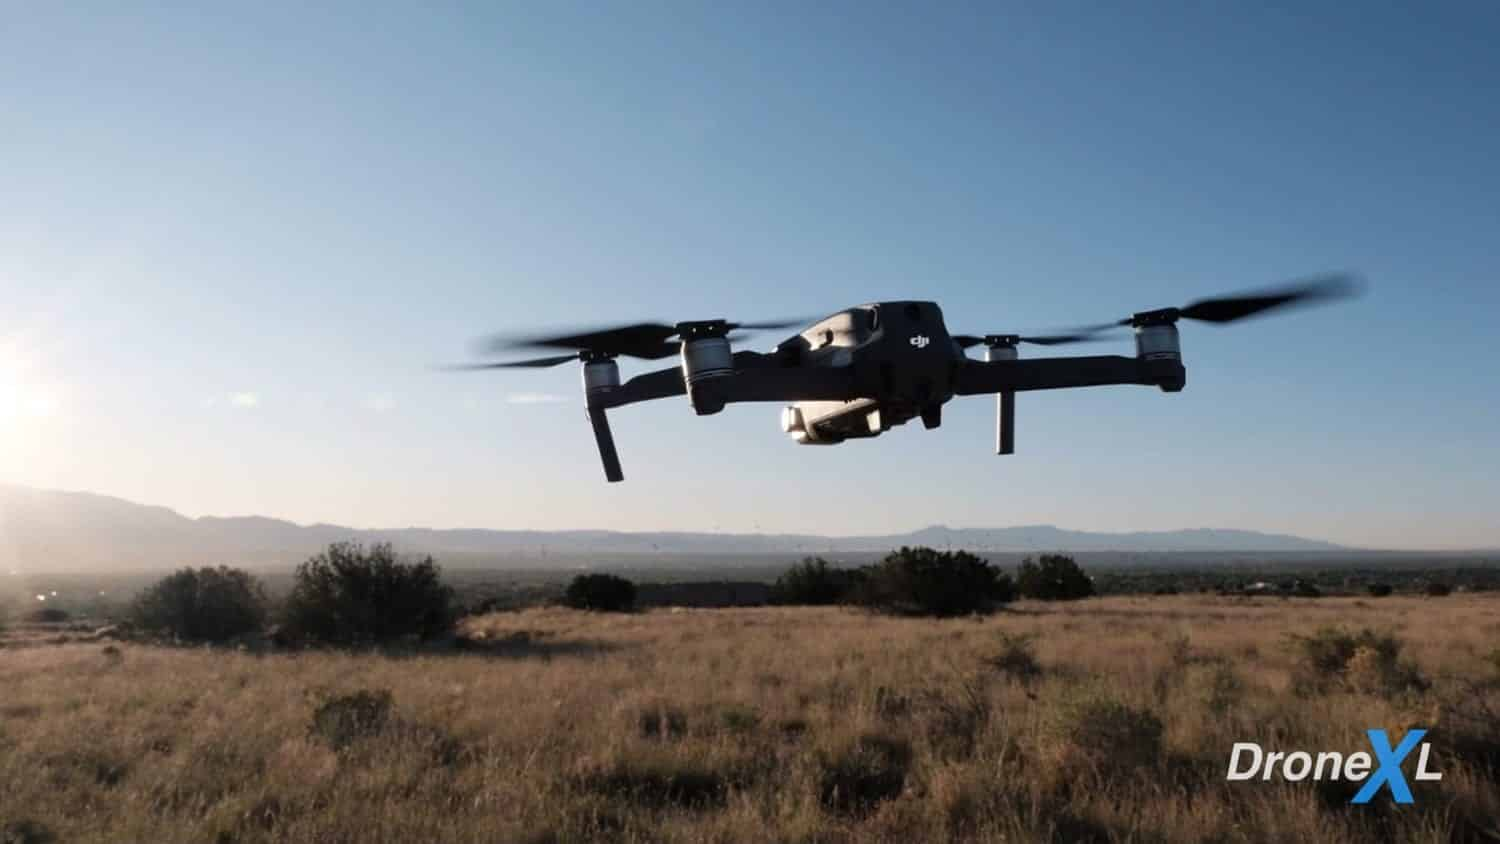 Texas' drone law challenged by press organizations and photographers